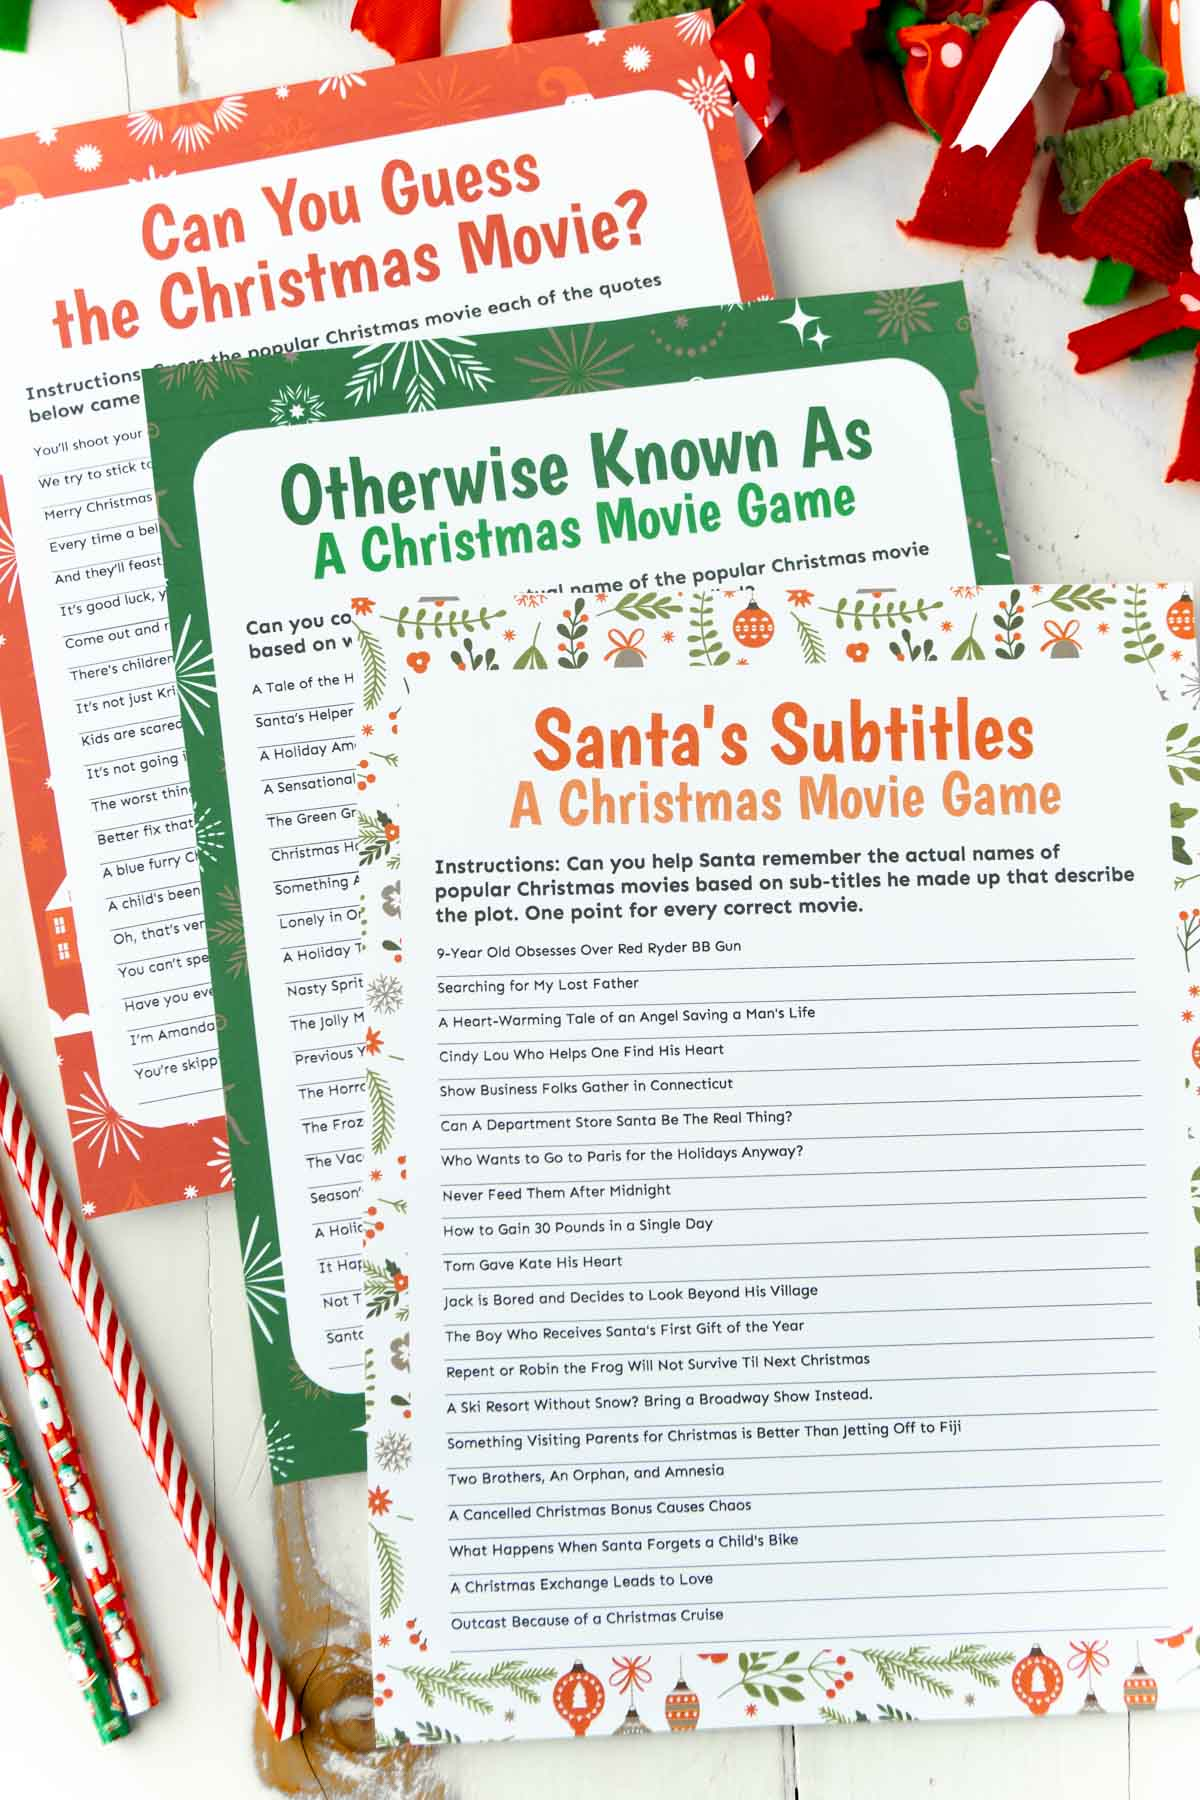 Three Christmas movie trivia games on top of each other